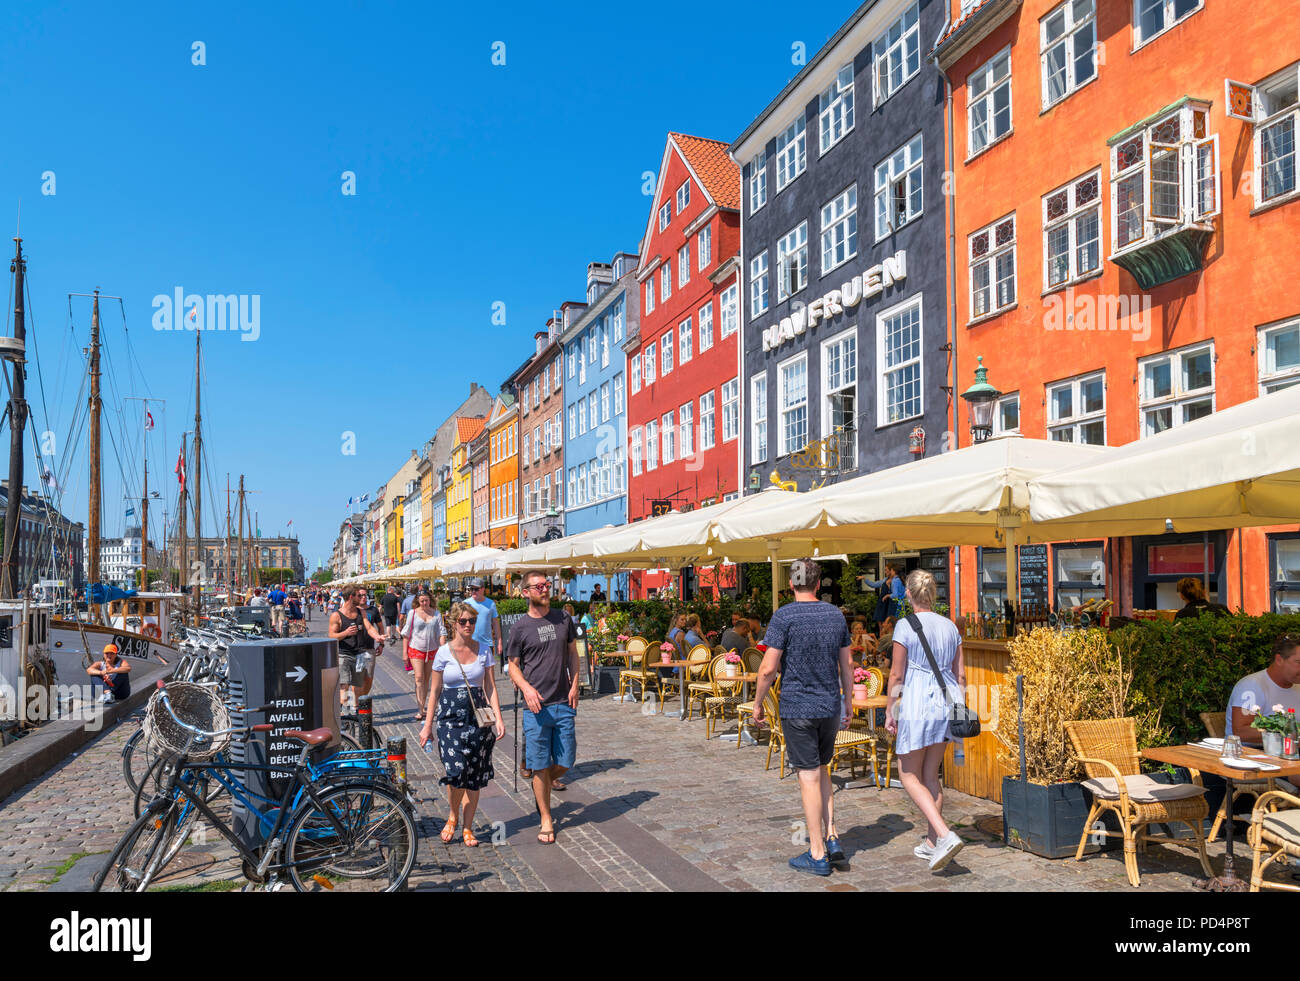 Nyhavn, Copenhagen. Cafes, bars and restaurants along the historic Nyhavn canal, Copenhagen, Denmark - Stock Image